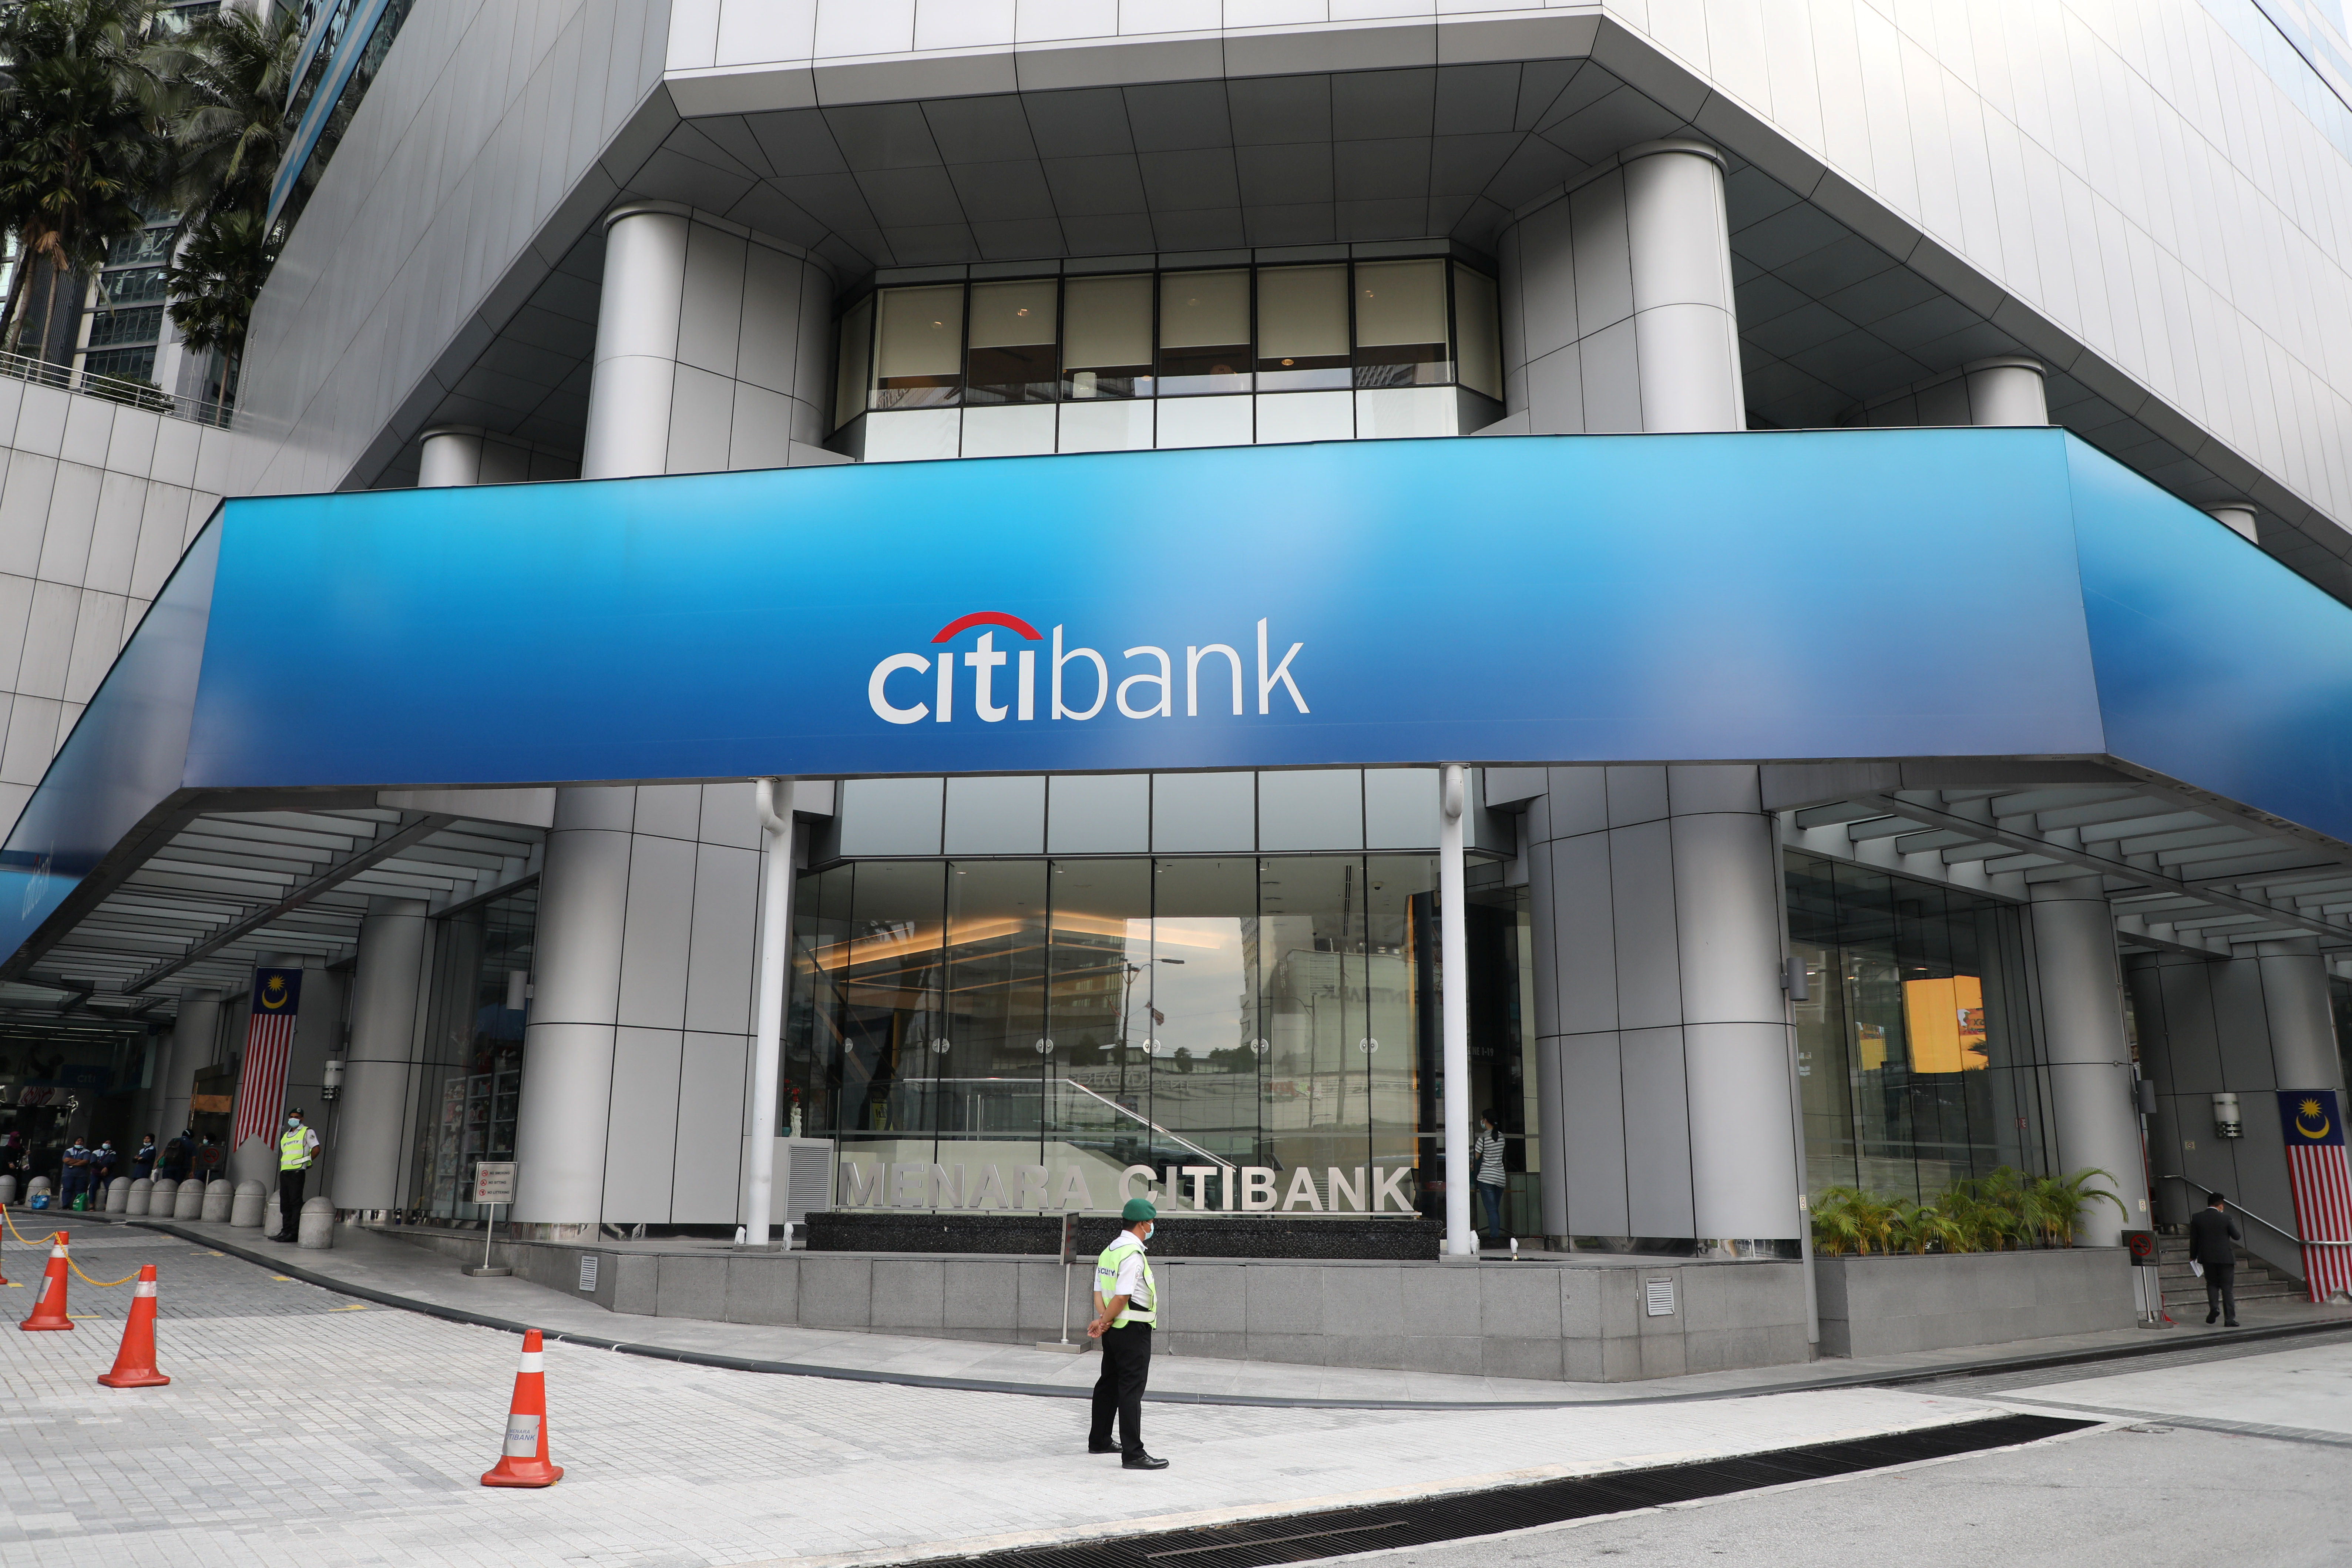 A general view of the Citibank headquarters in Kuala Lumpur, Malaysia September 15, 2020. REUTERS/Lim Huey Teng